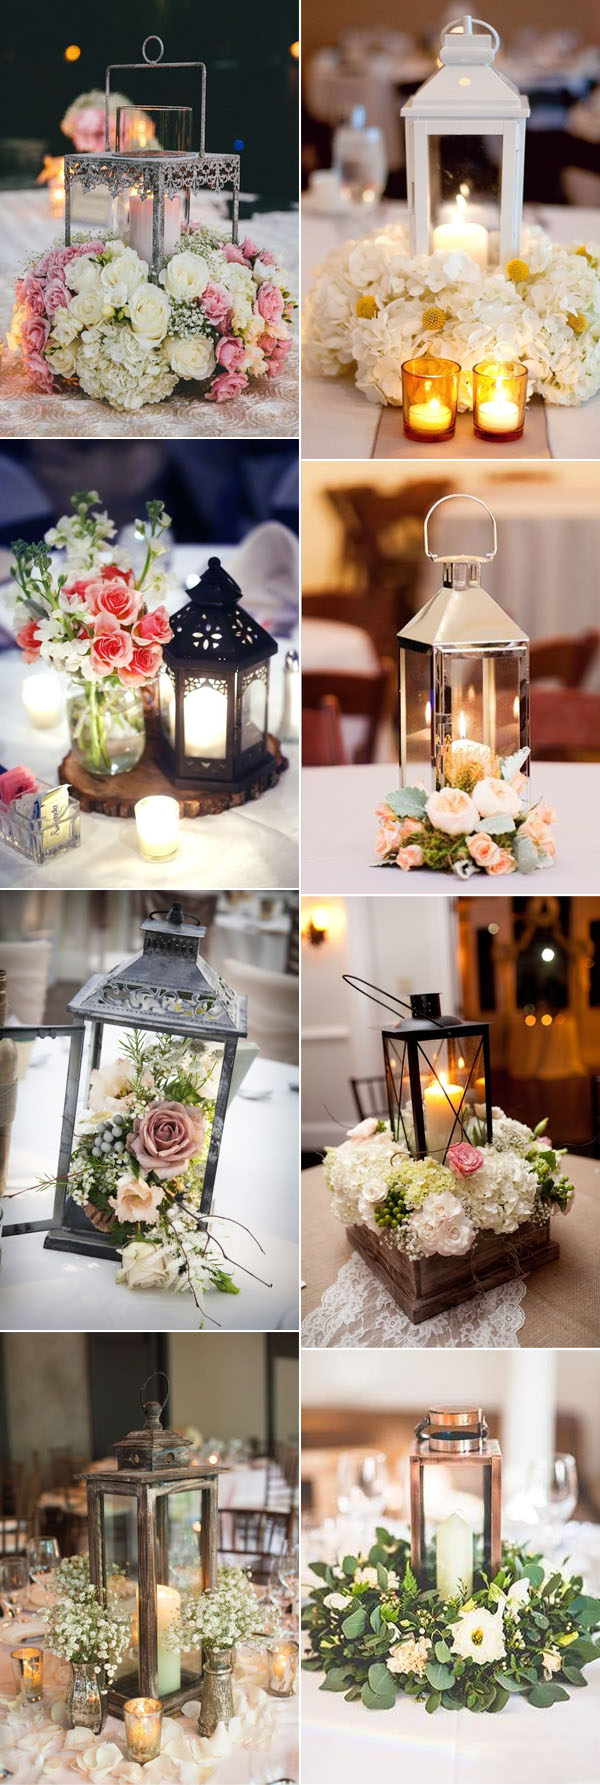 gorgeous-lantern-and-floral-wedding-centerpieces-ideas